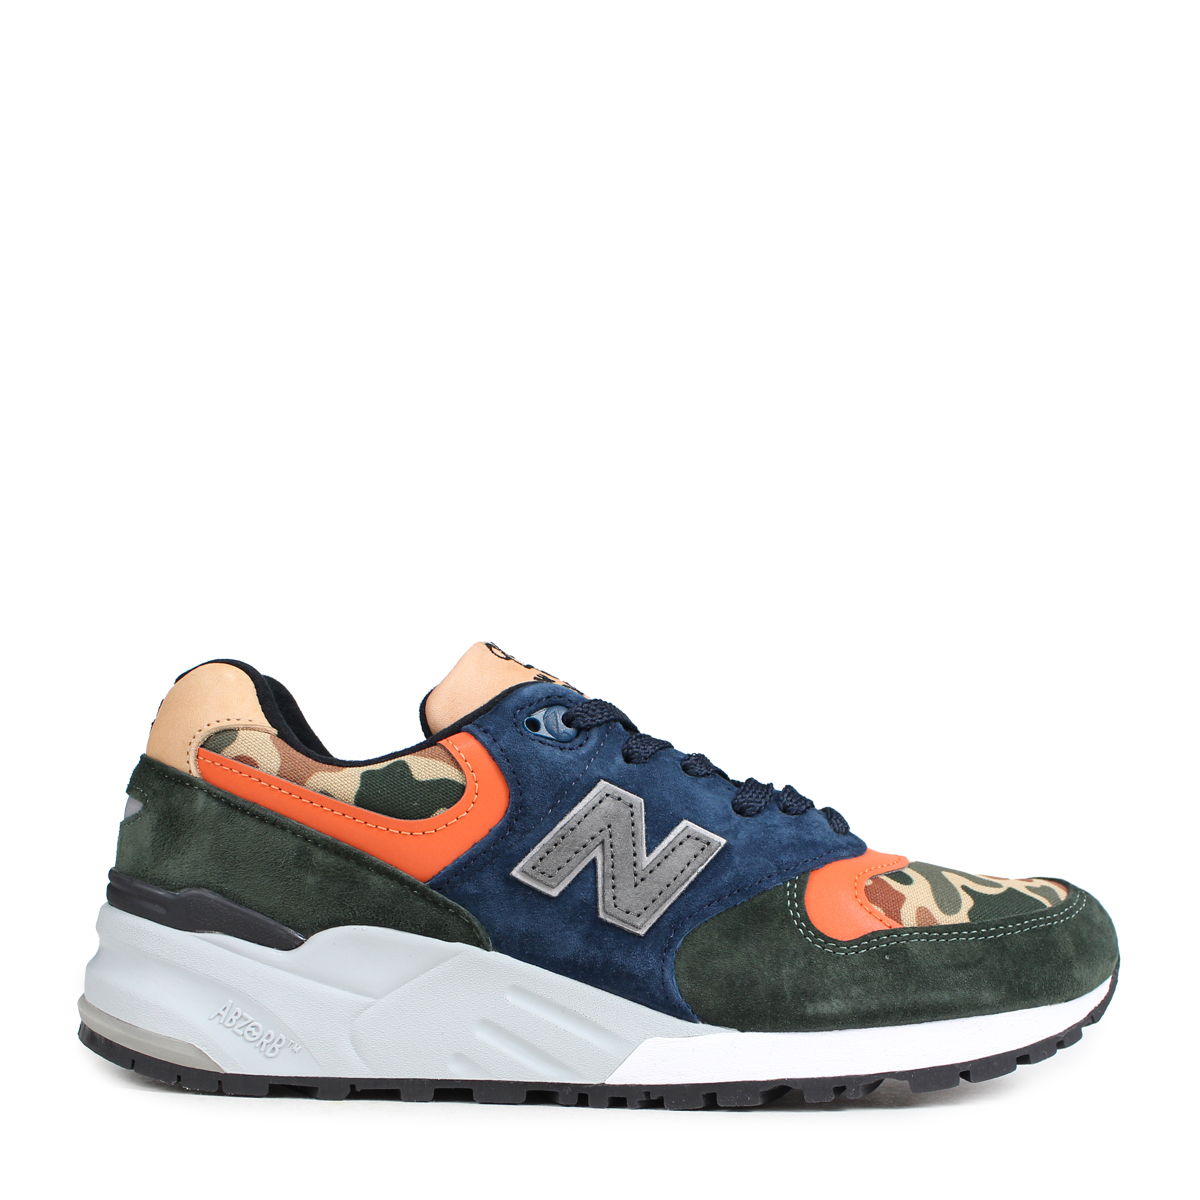 3241ef32ae072 ... new balance M999NI New Balance 999 men's sneakers D Wise MADE IN USA  duck [195 ...